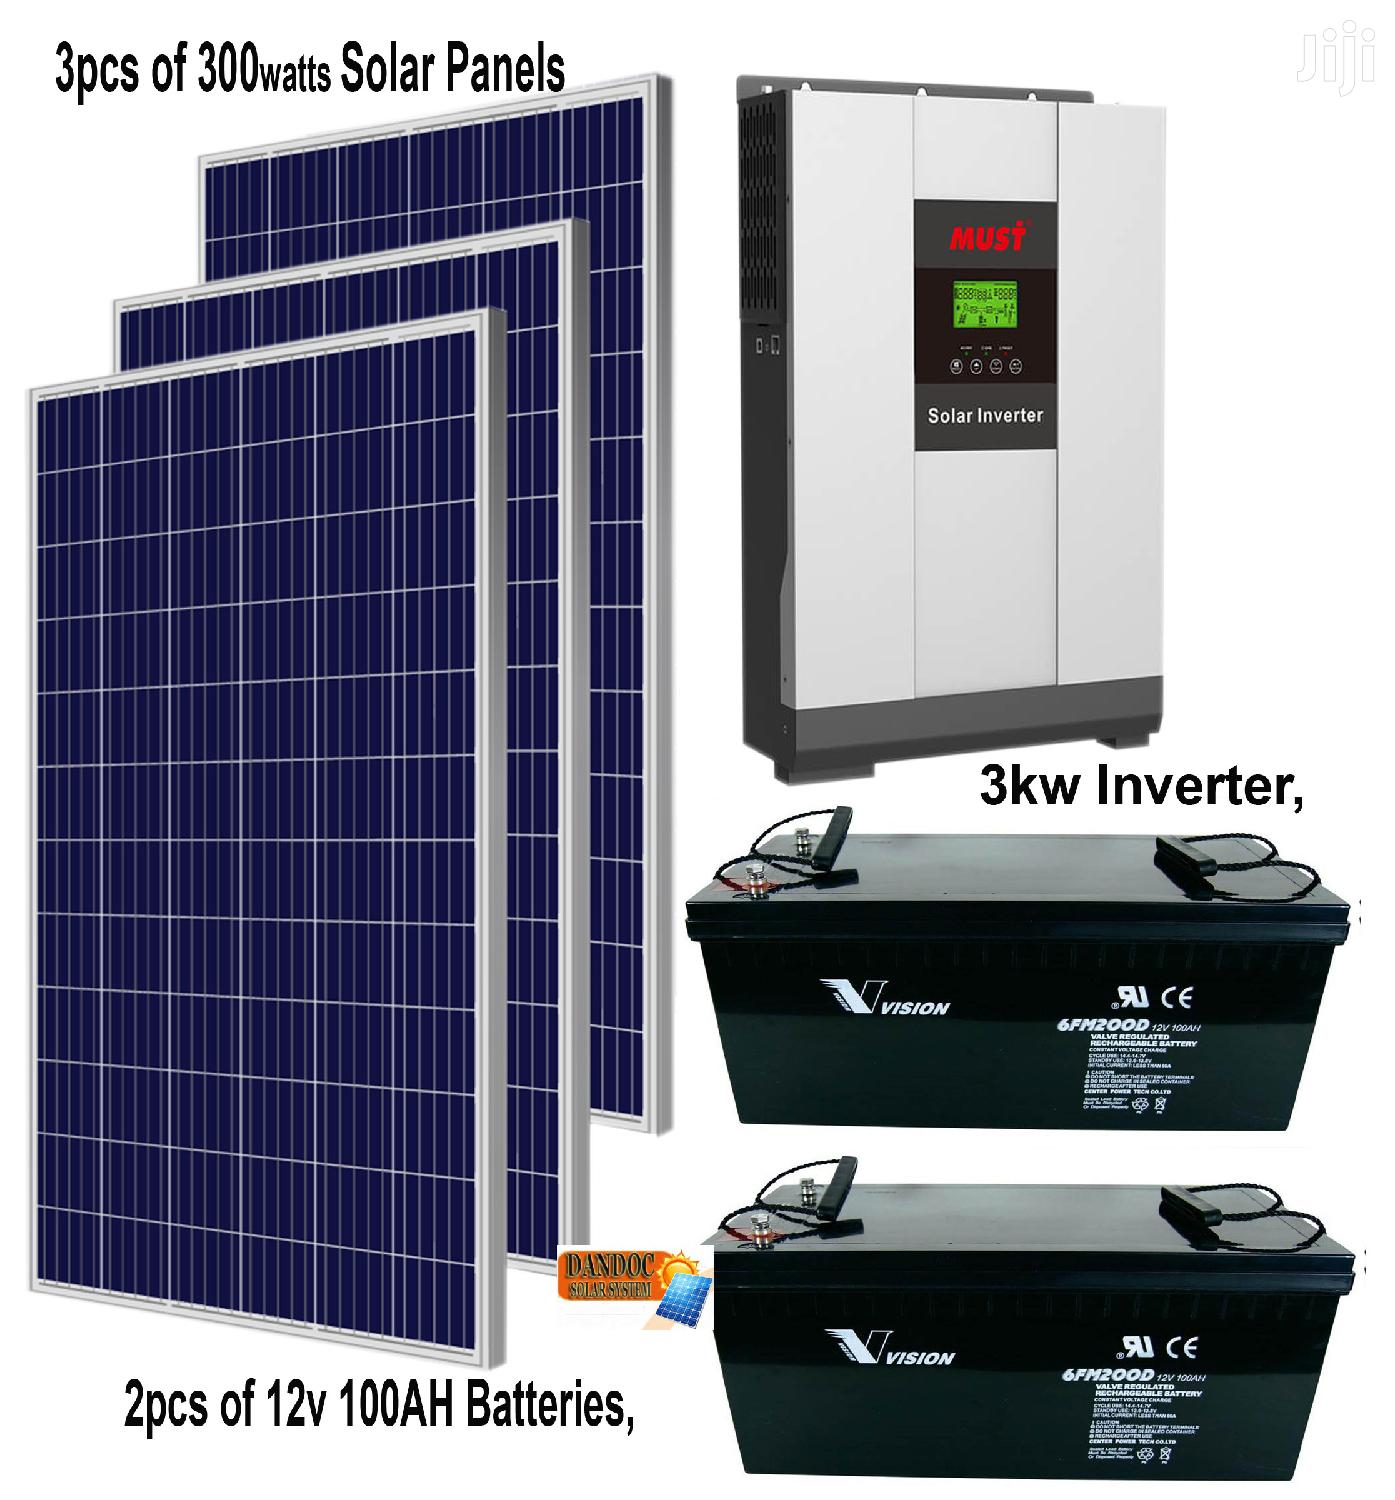 3kw Solar With 3 Solar Panels and 2 Batteries